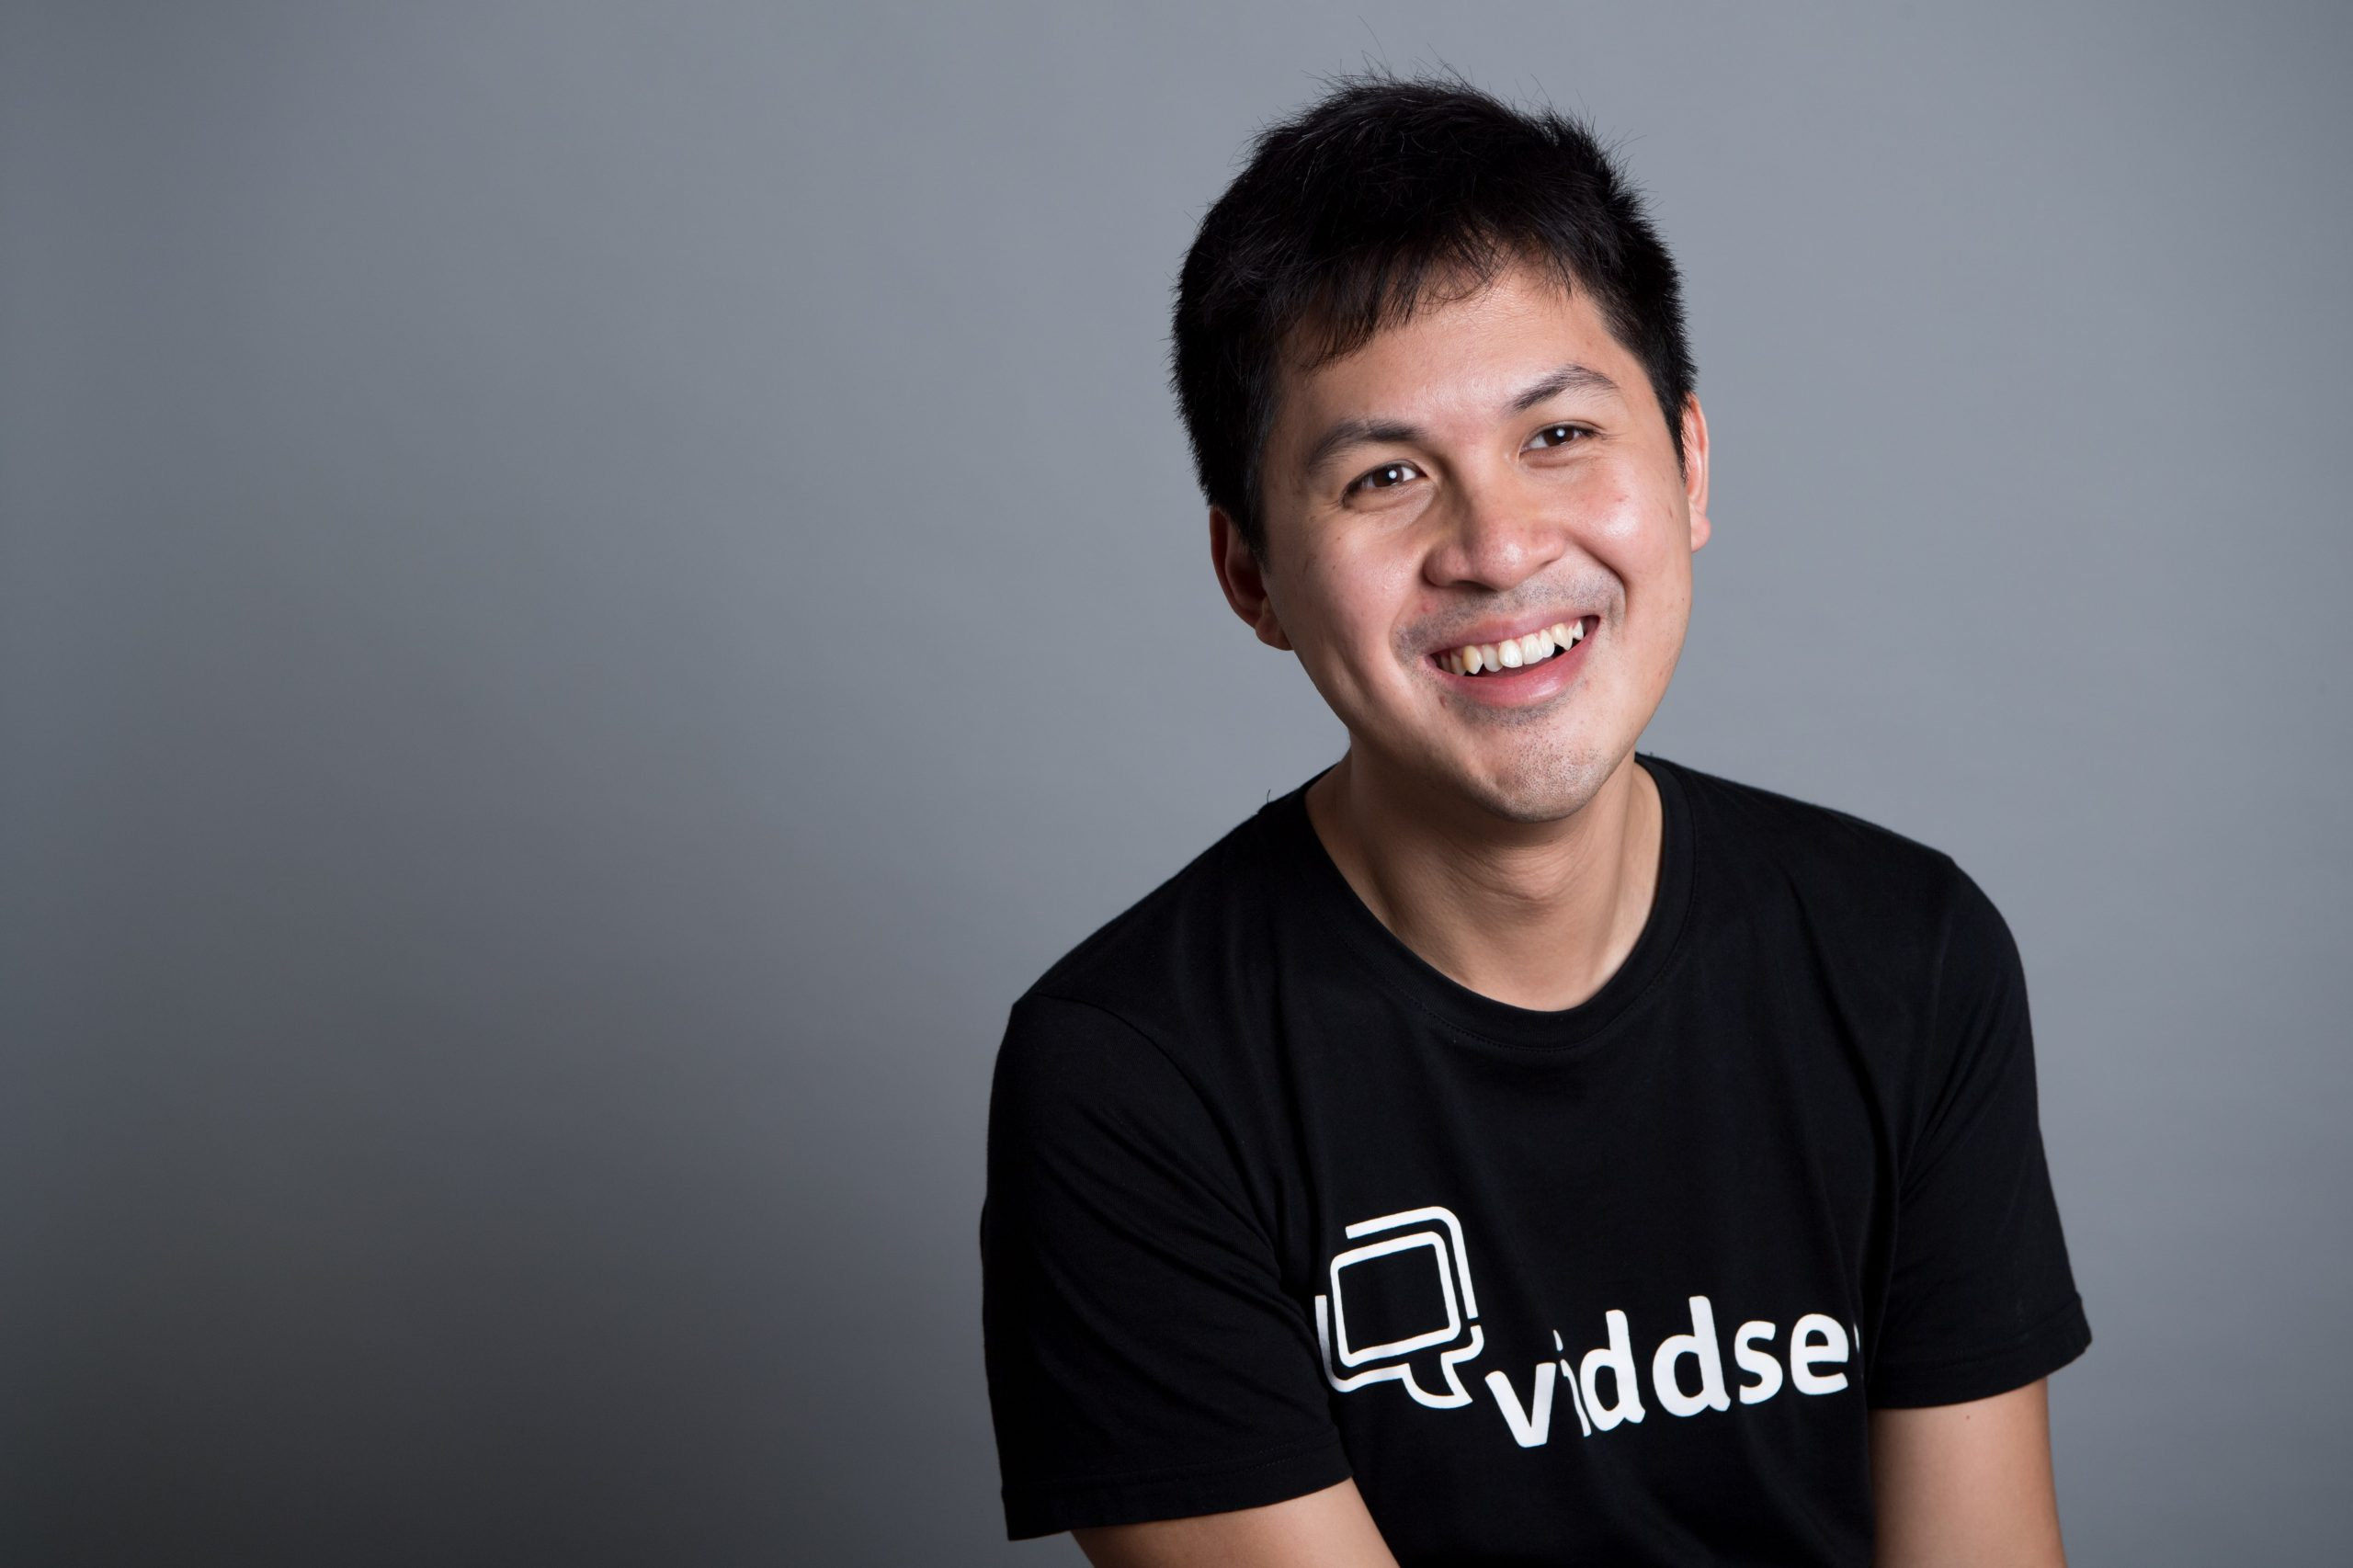 Viddsee is empowering Asian storytellers through meaningful content